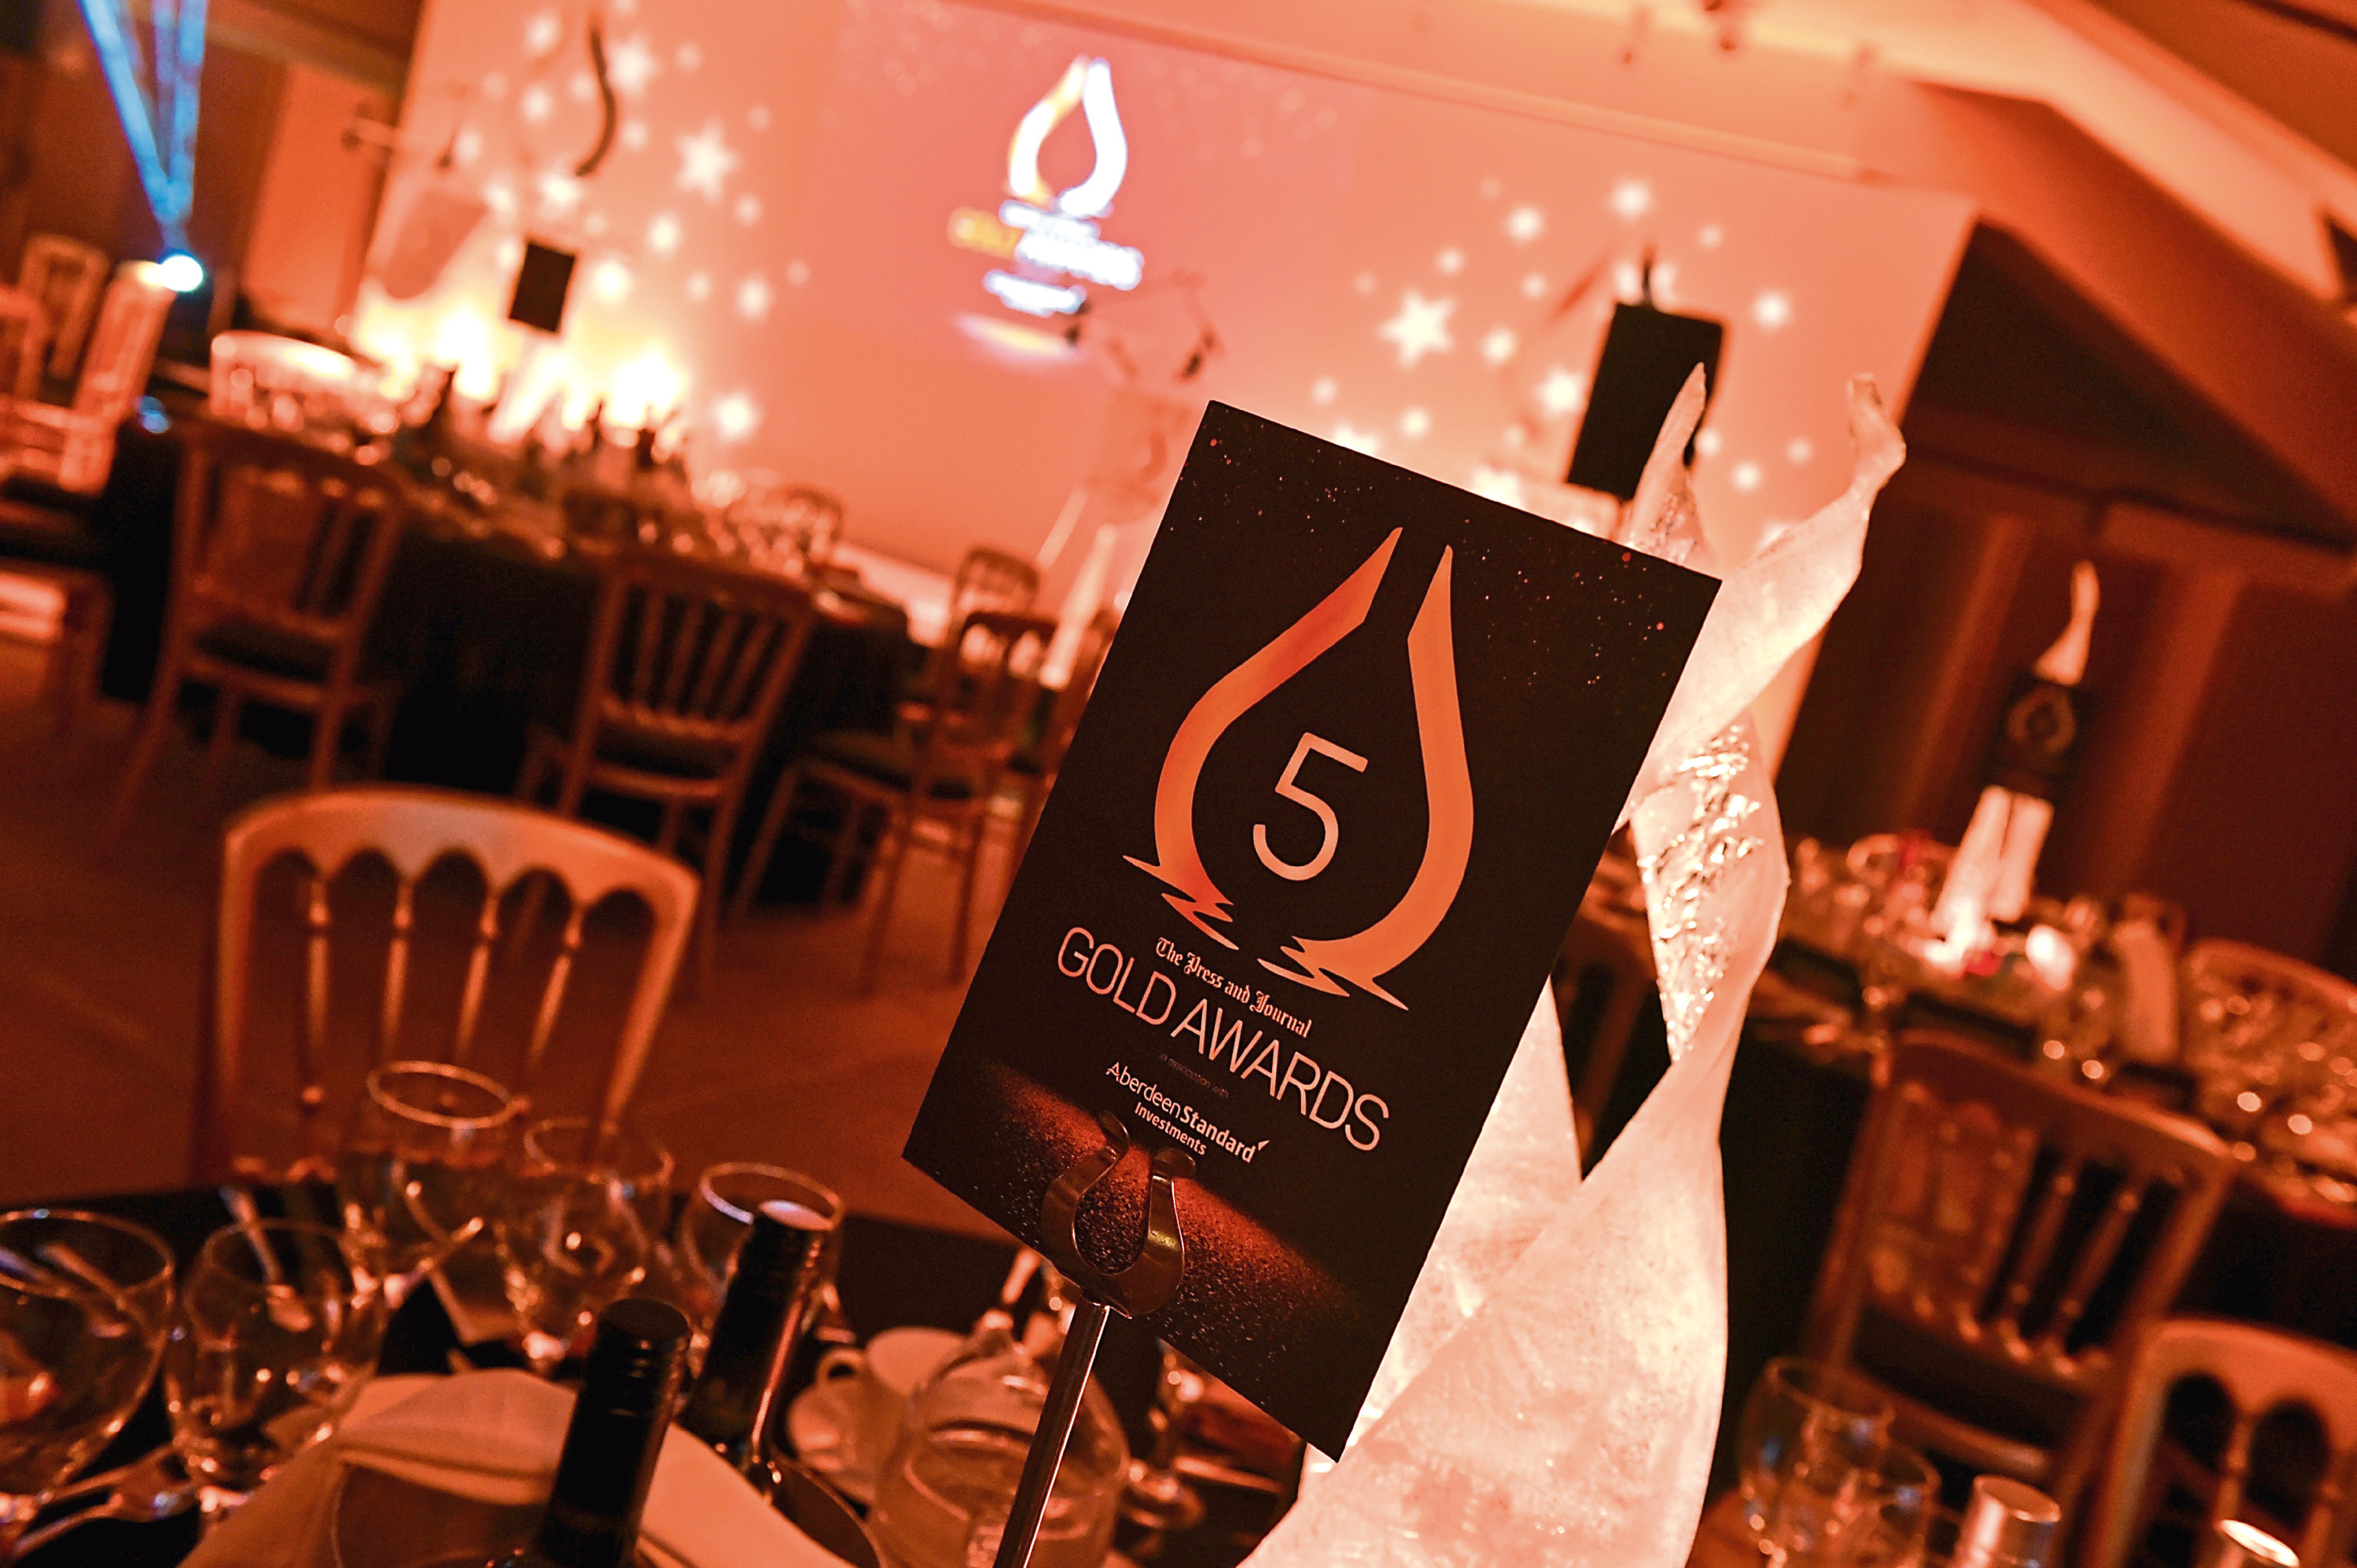 The awards will reach their climax at the Marcliffe Hotel and Spa on September 7, following the shortlisting of entries last month.